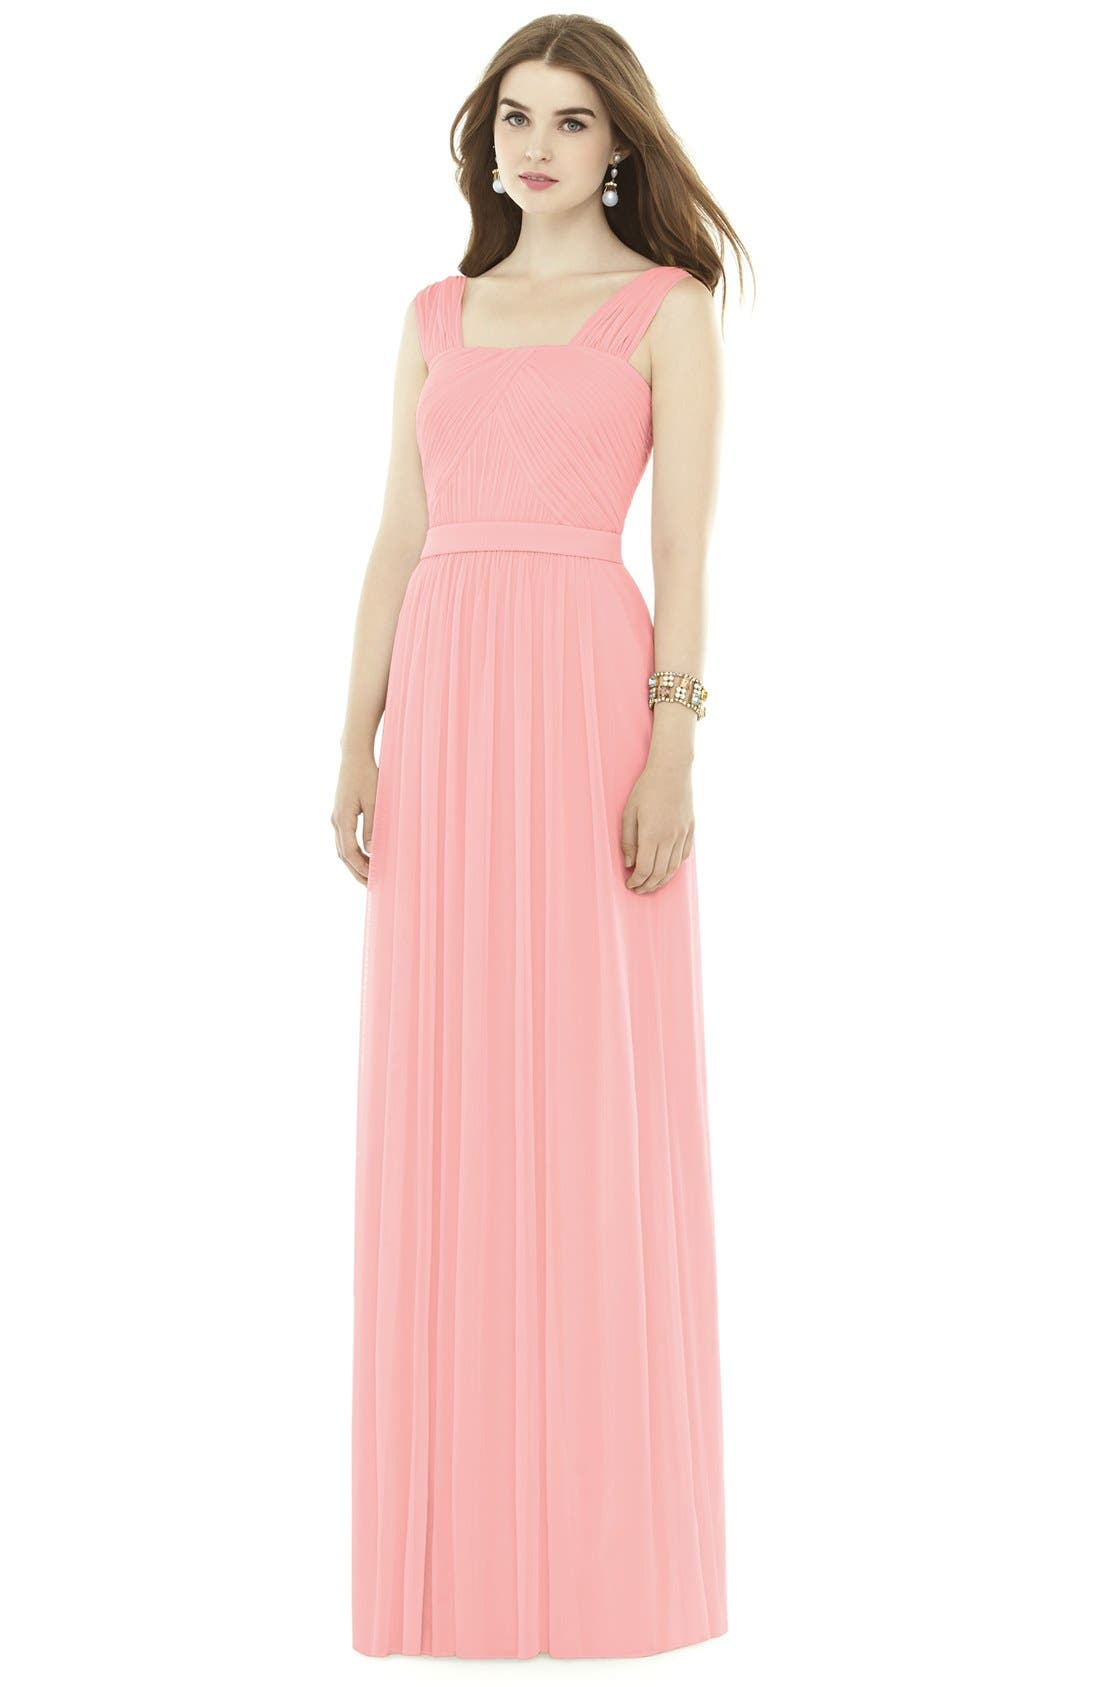 Pleat Chiffon Knit A-Line Gown with Belt,                             Main thumbnail 1, color,                             633